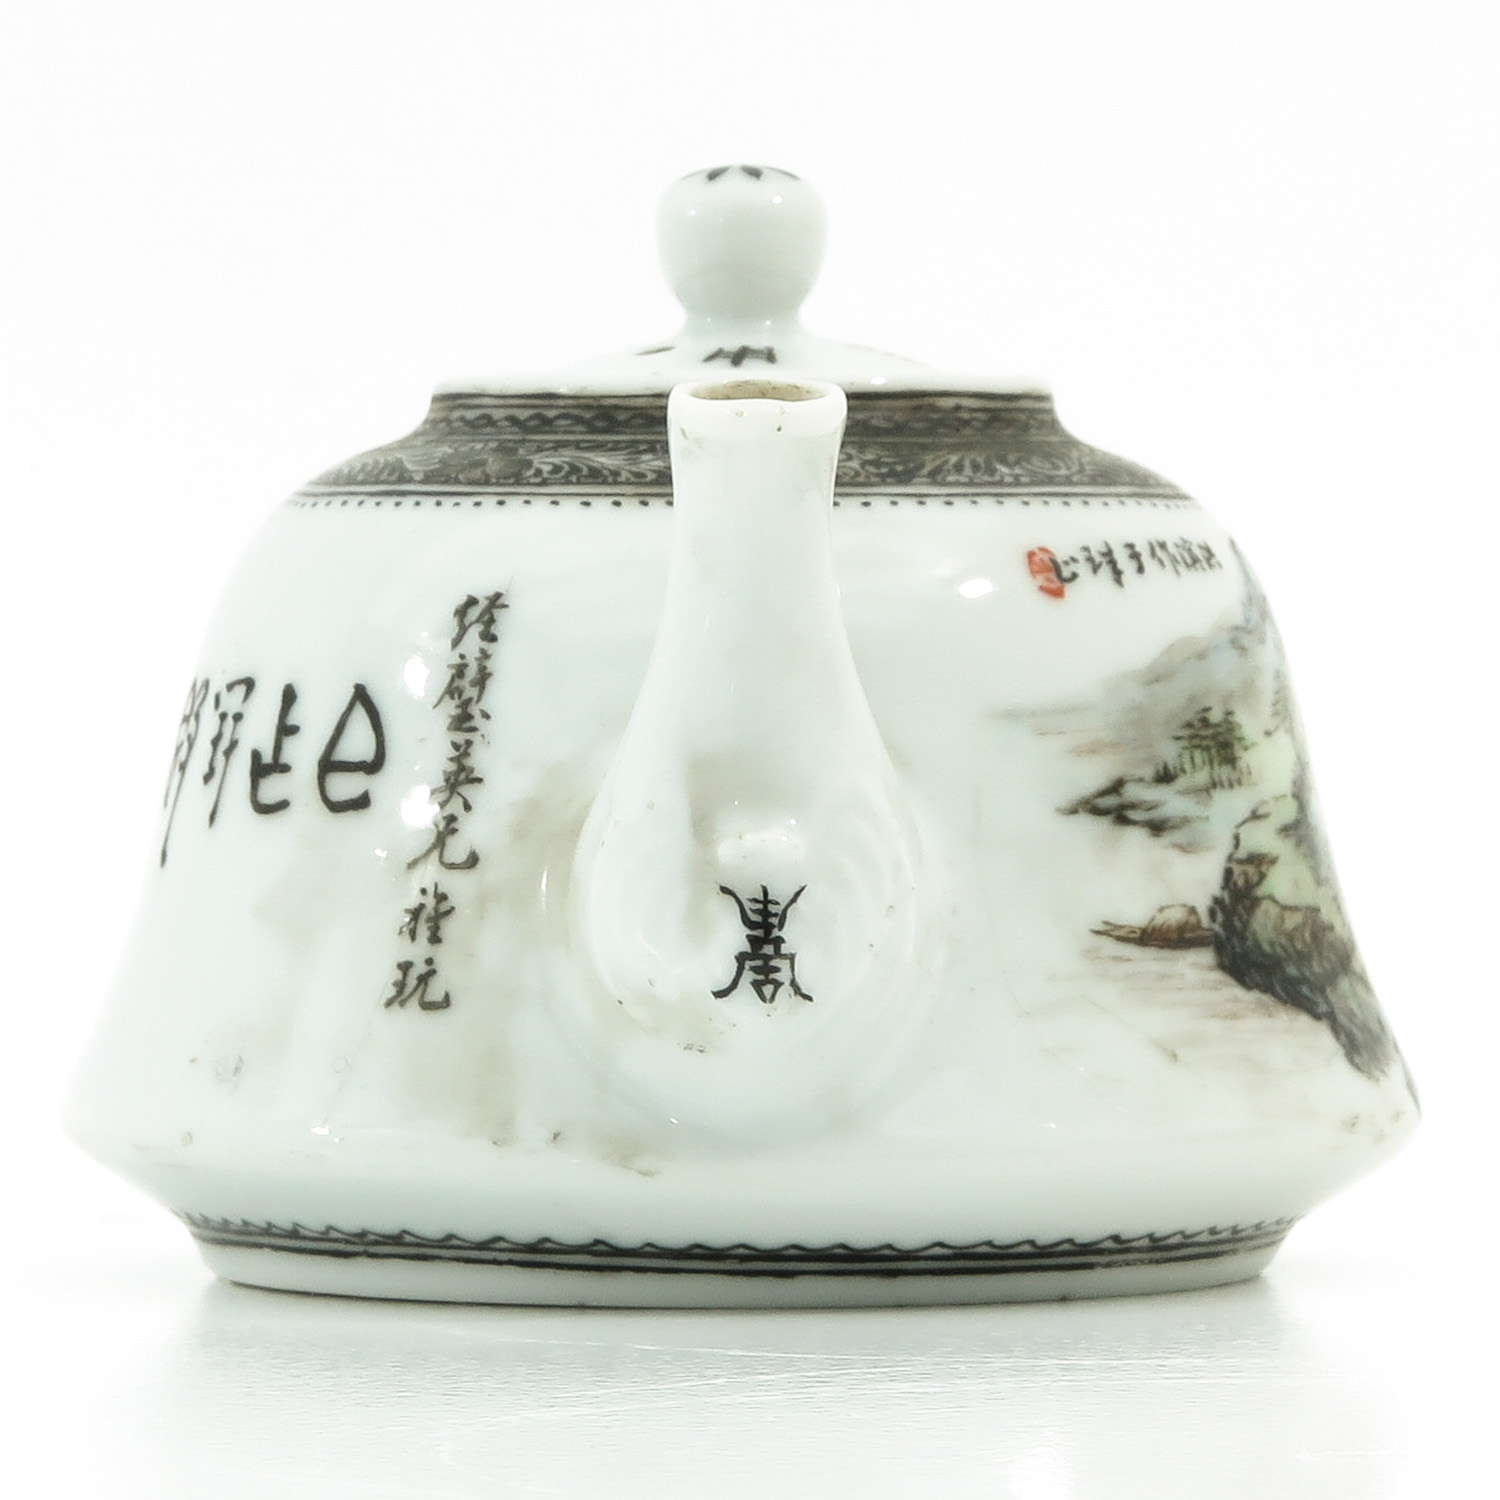 A Chinese Teapot - Image 4 of 10